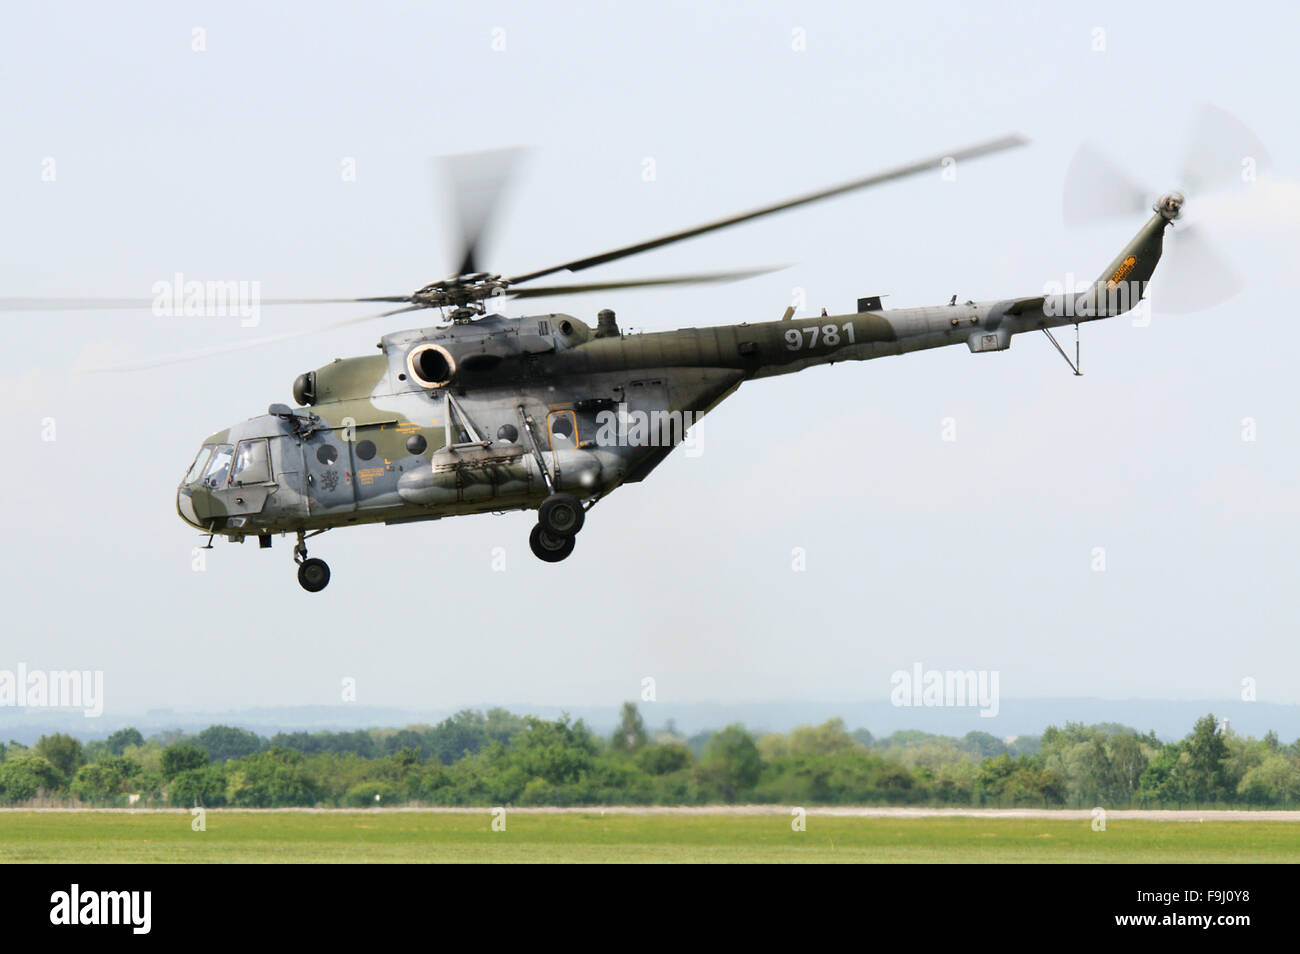 Mil Mi-171 Helicopter of Czech Air Force Stock Photo, Royalty Free on mil mi-8, ah-64 apache, vietnam helicopters, mil mi-28, lockheed ac-130, russian air force, large helicopters, rc helicopters, mil mi-17, sukhoi su-27, usa helicopters, sukhoi su-34, afghan helicopters, tupolev tu-95, weird helicopters, kamov ka-50, attack helicopter, military helicopter, hawaii helicopters, era helicopters, russia sending syria attack helicopters, mikoyan mig-29, sukhoi su-35, sikorsky uh-60 black hawk, hq helicopters, eurocopter tiger, hh helicopters, ch helicopters, sukhoi su-24, sukhoi su-25, russian helicopters, kazan helicopters, girls who pilot helicopters, sukhoi su-30, do helicopters, mil mi-26, saudi helicopters, modern attack helicopters, us navy helicopters, military helicopters,